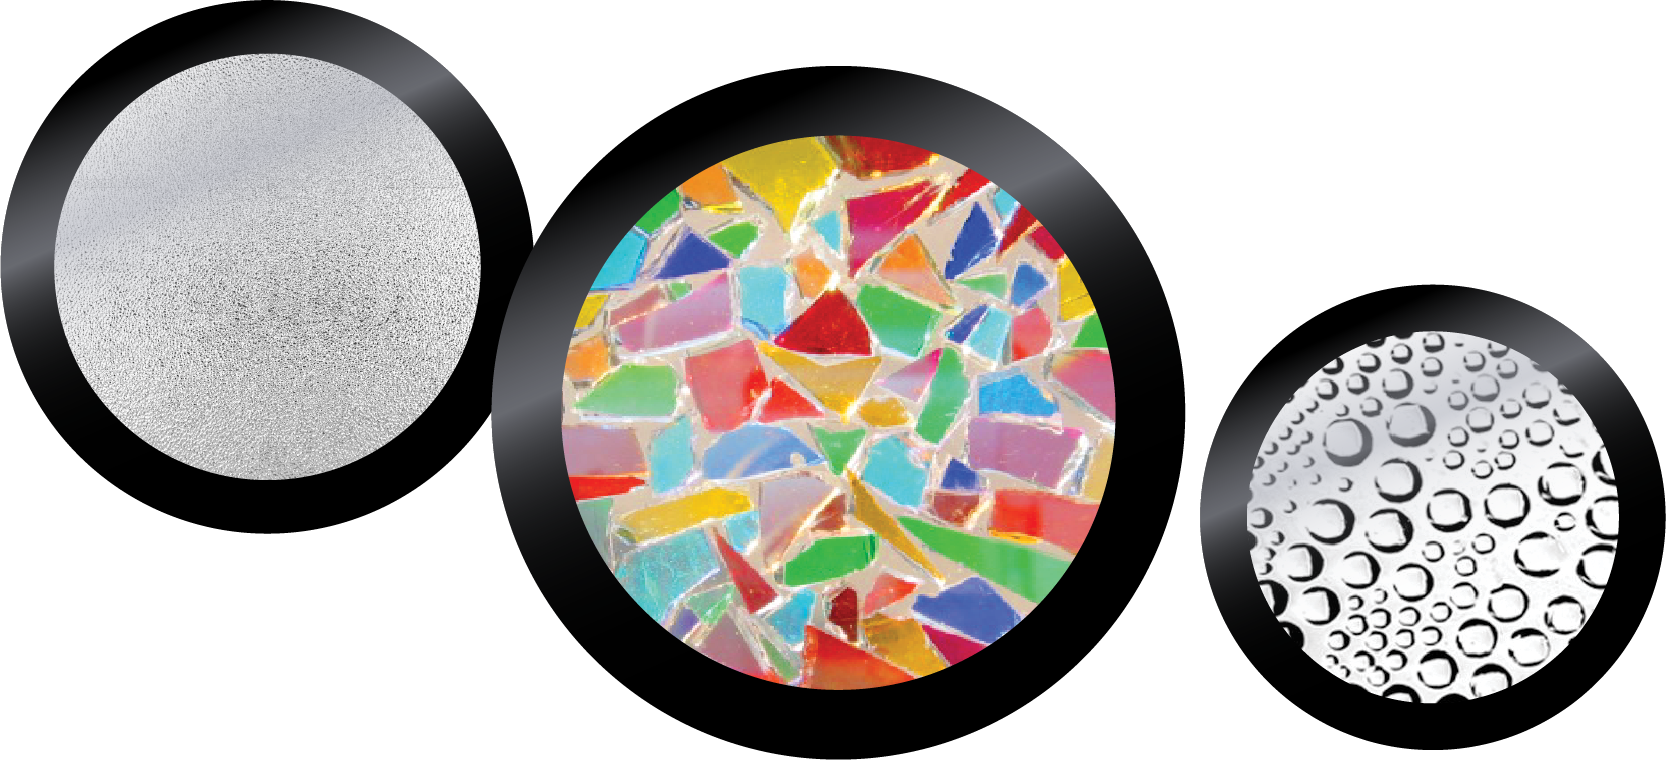 Frosted glass, kaleidoscope and effect glass gobos